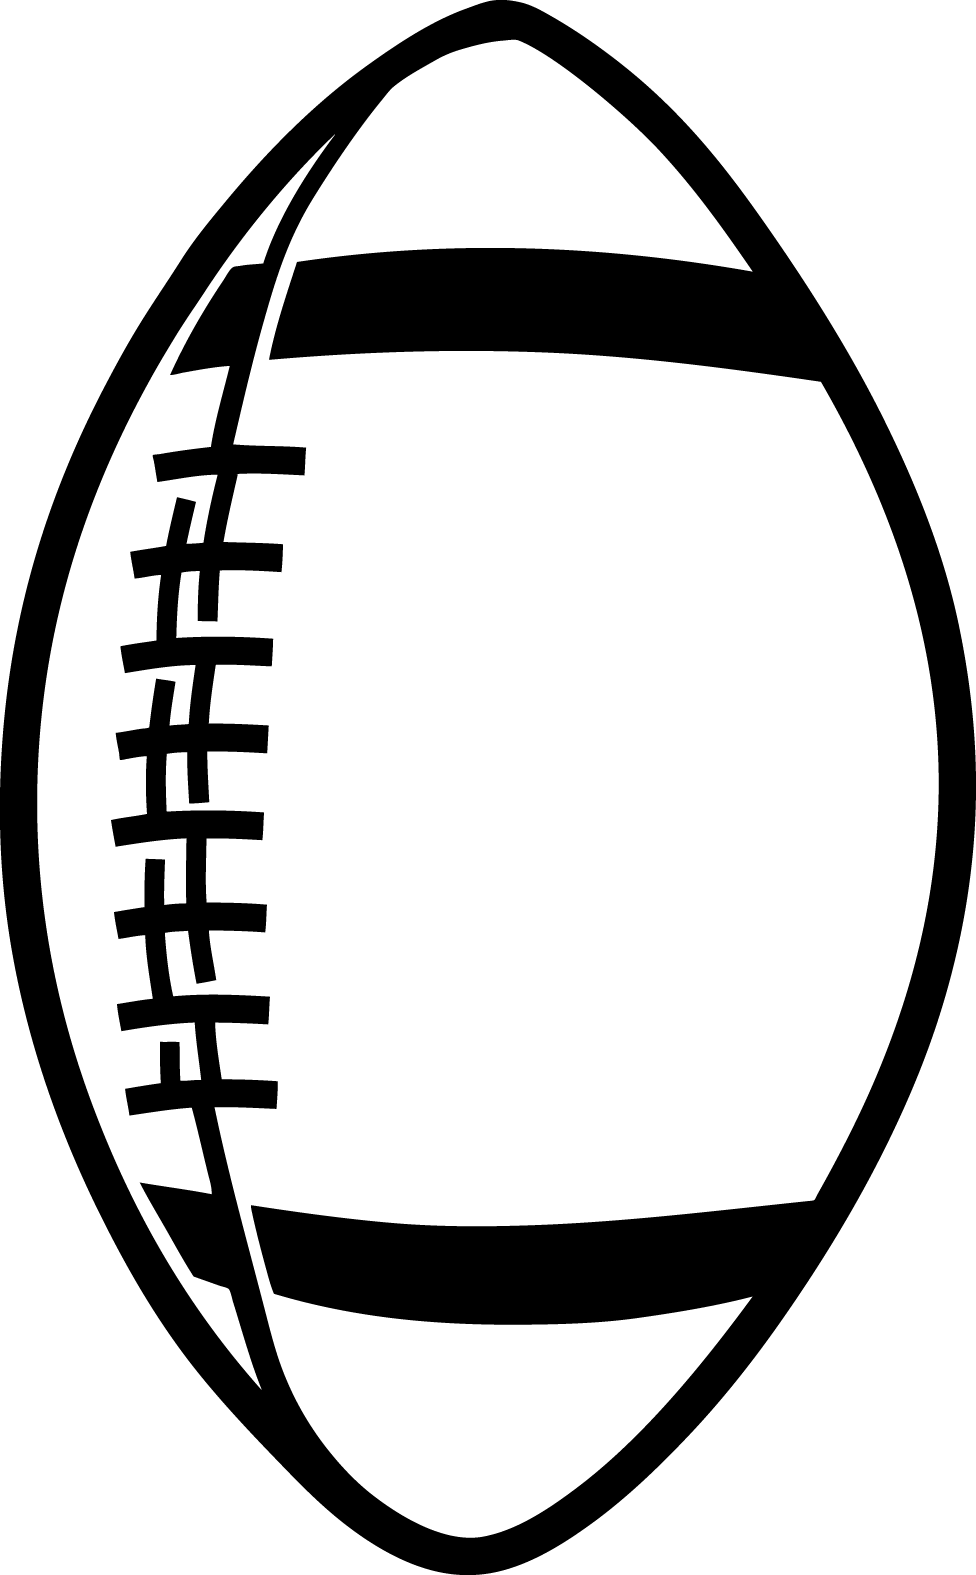 Football Field Black And White   Clipart Panda   Free Clipart Images